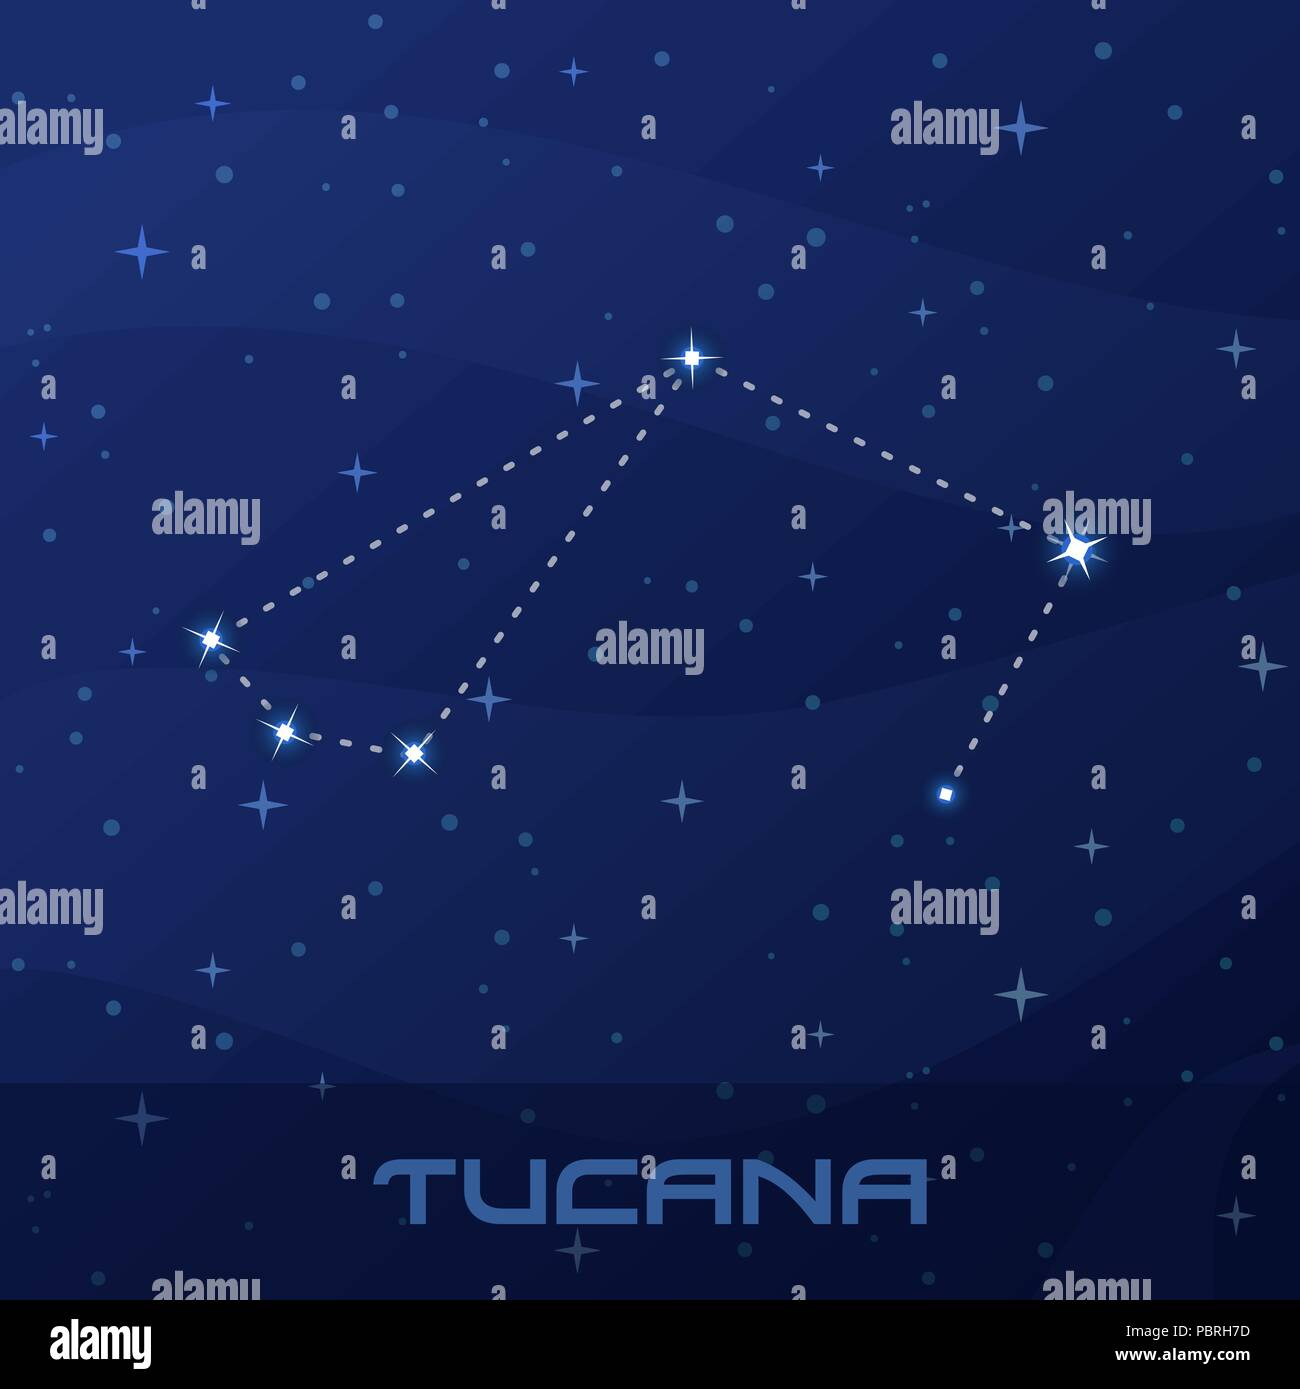 Constellation Tucana, Toucan, ...